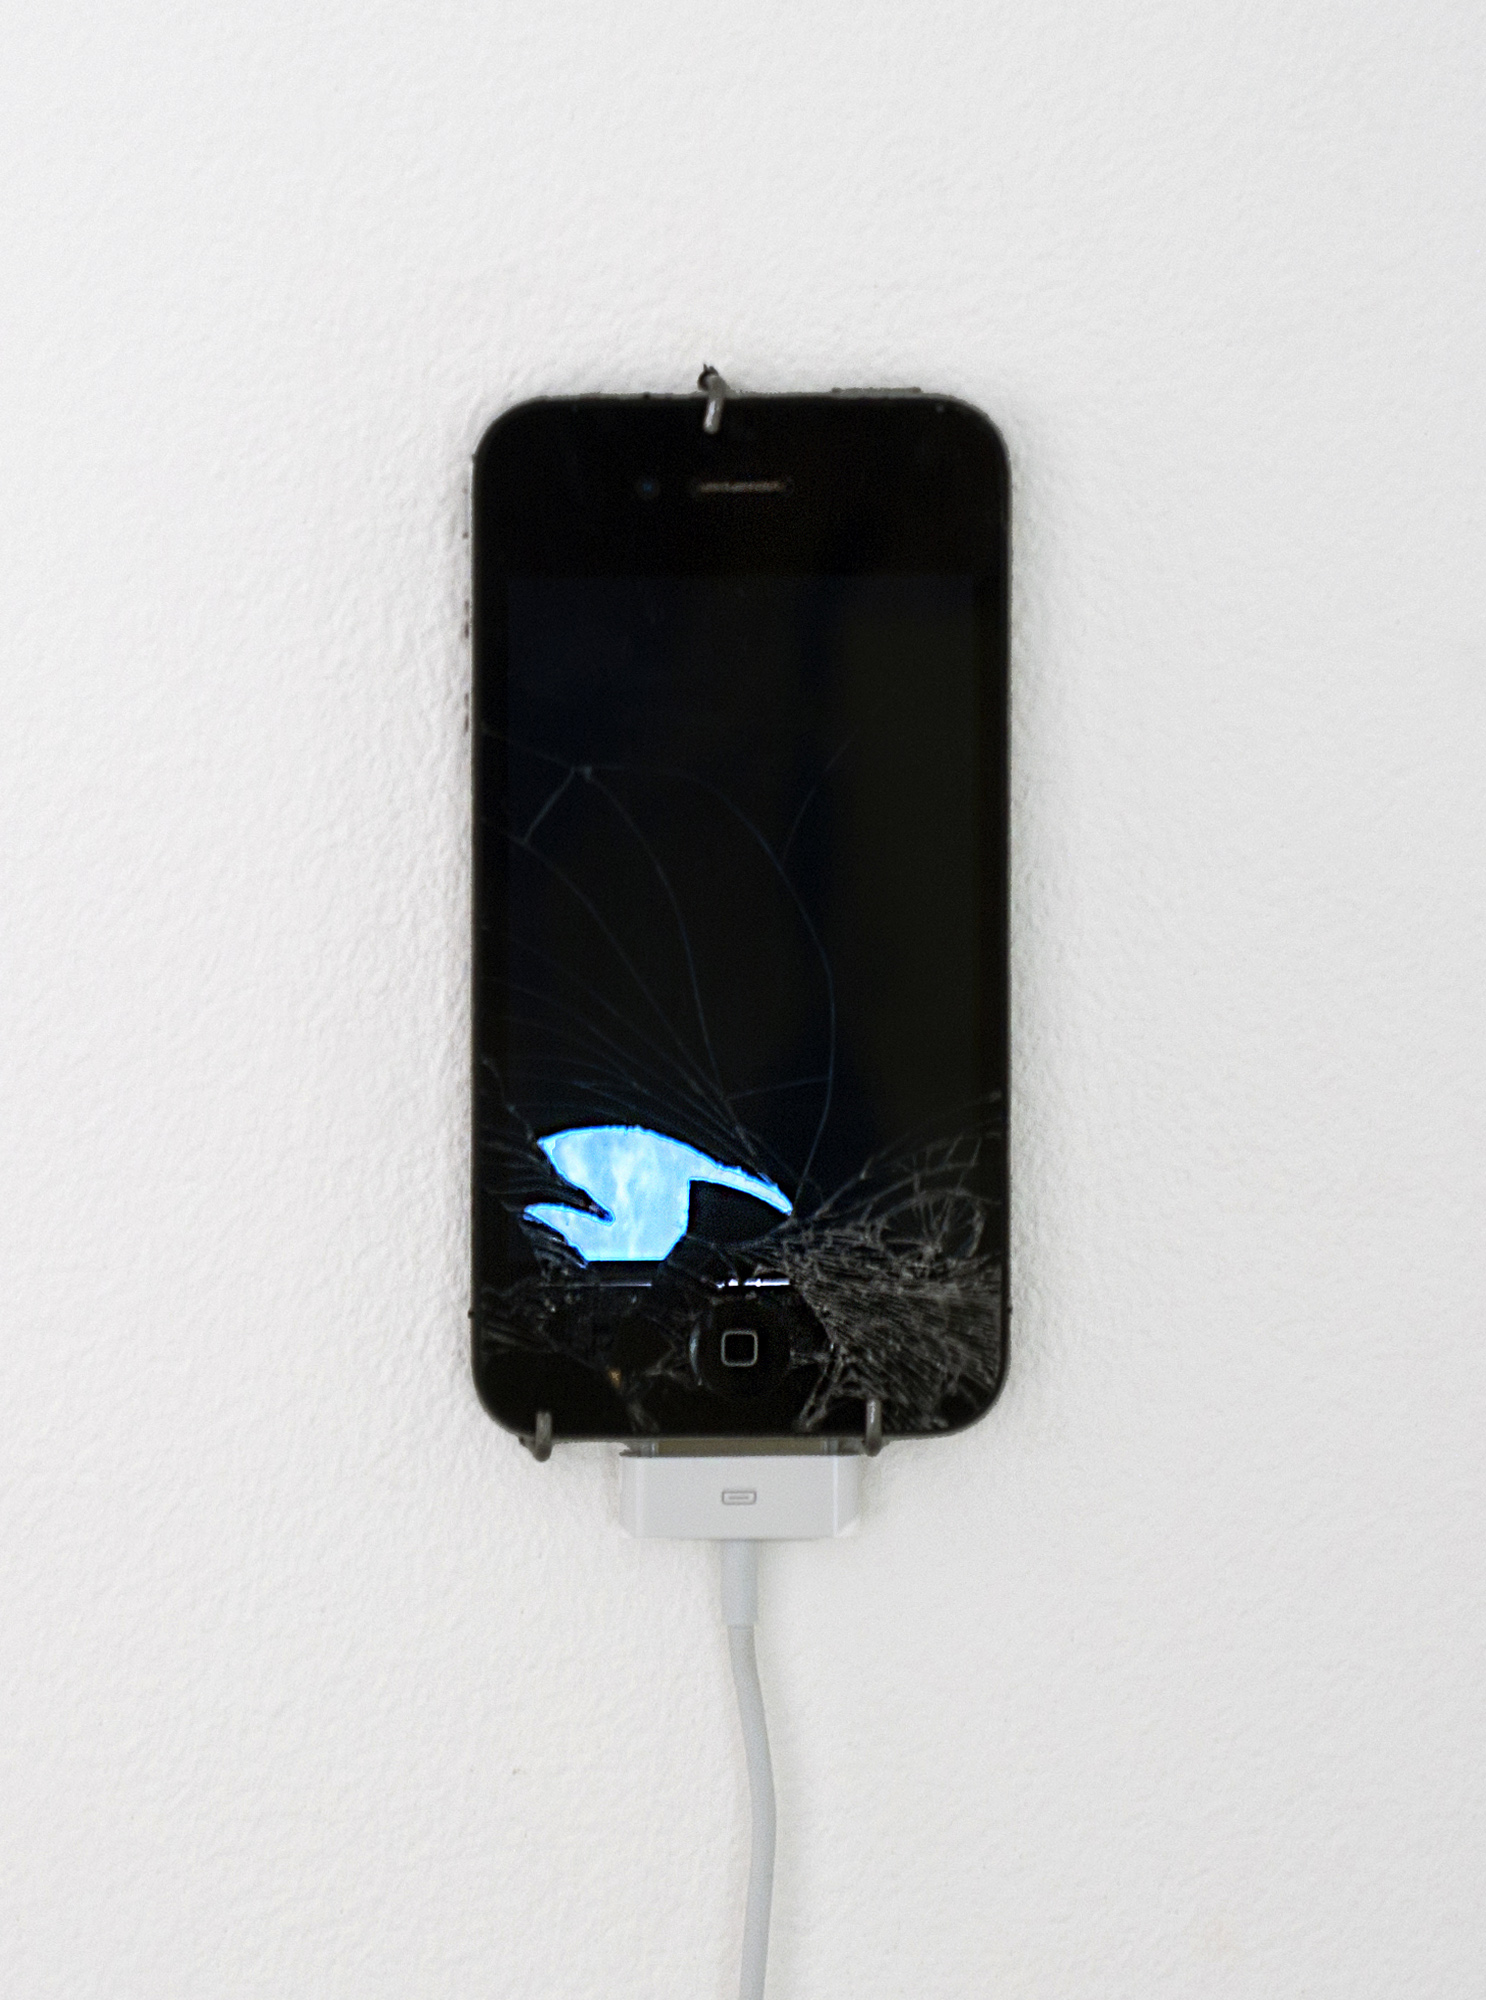 Émilie Brout & Maxime Marion. <em>Return of the Broken Screens (Apple iPhone 4)</em>, 2015. Broken found smart-phone, video, 4 3/4 x 2 1/4 inches (12.1 x 5.7 cm)